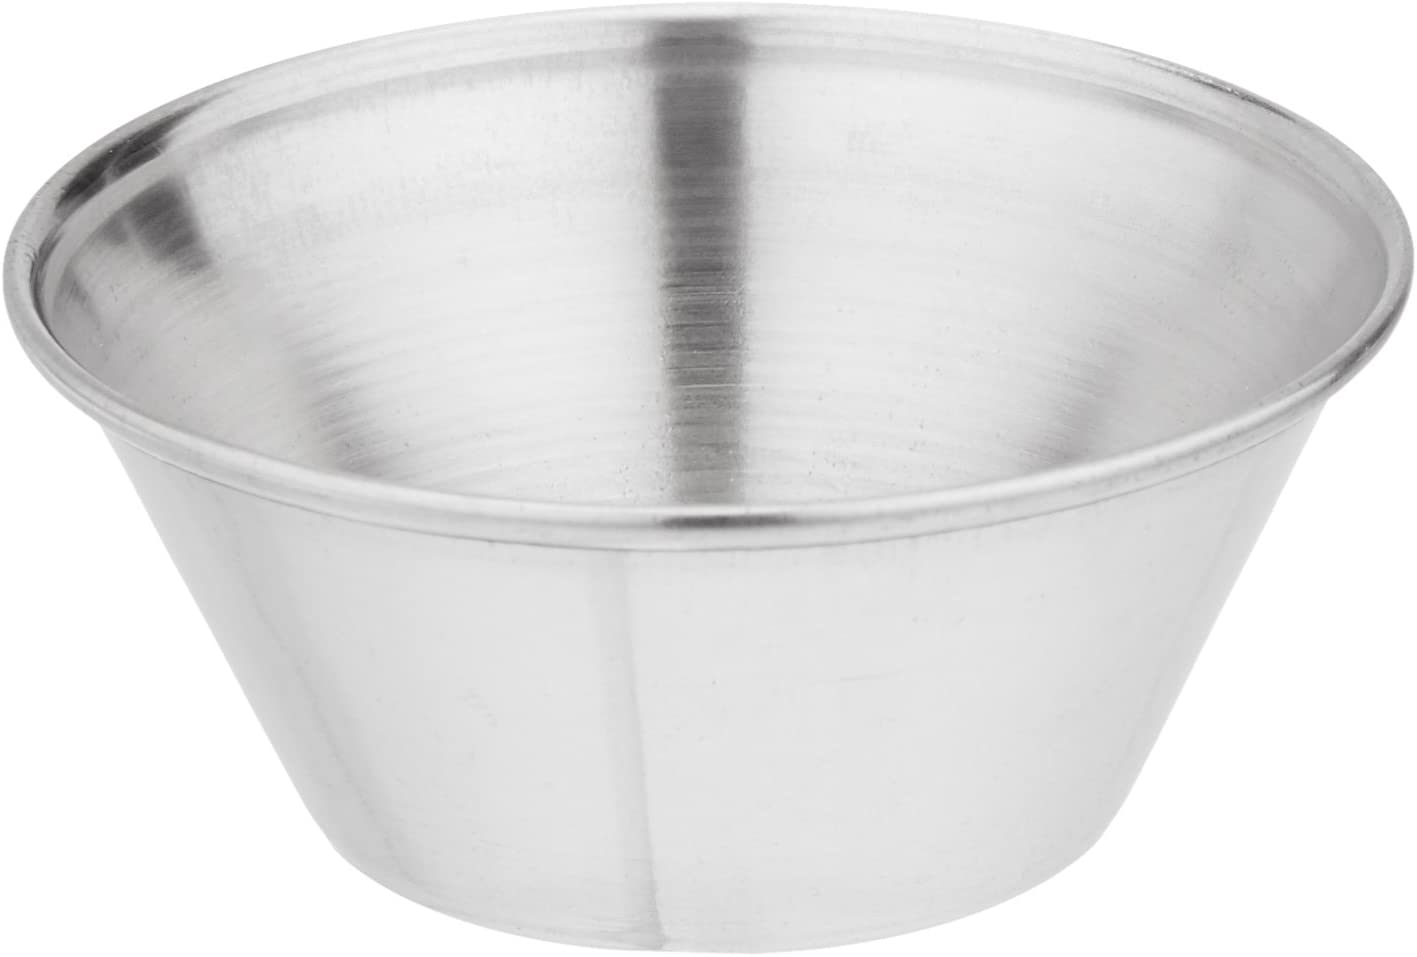 Winco SCP-15 Stainless Steel Sauce Cup, 1.5-Ounce